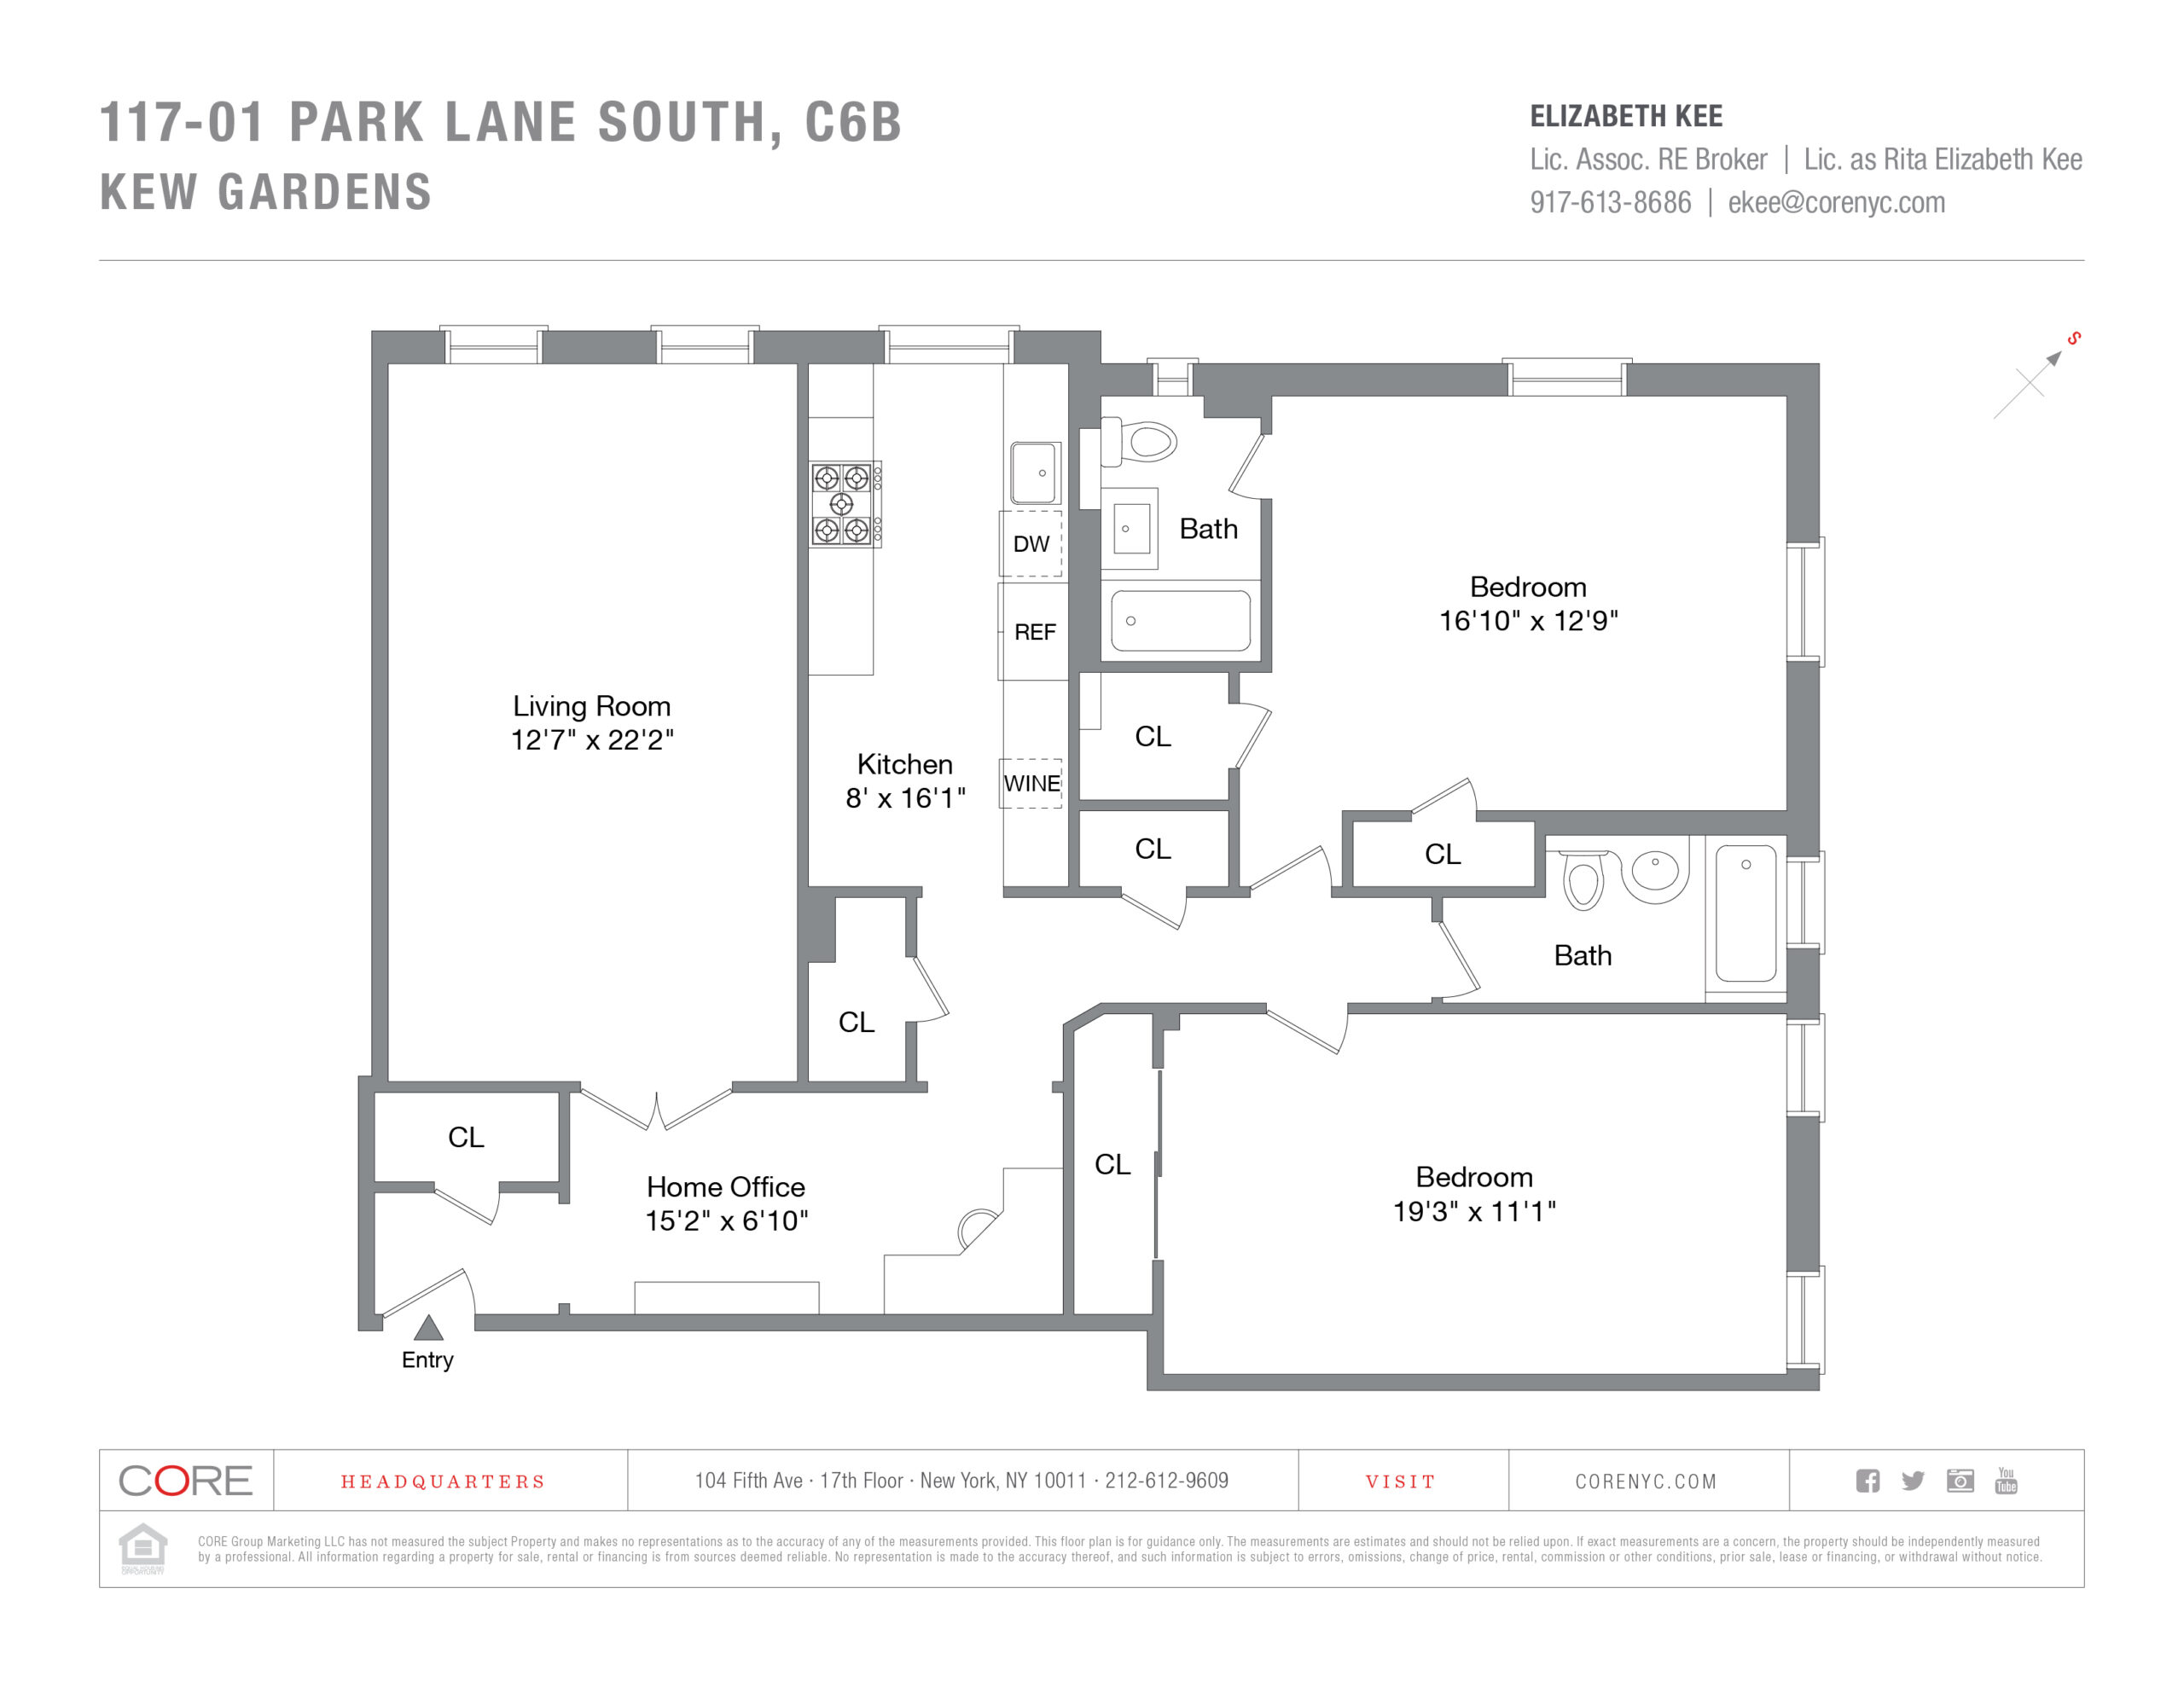 117-01 Park Lane South C6B, Queens, NY 11418